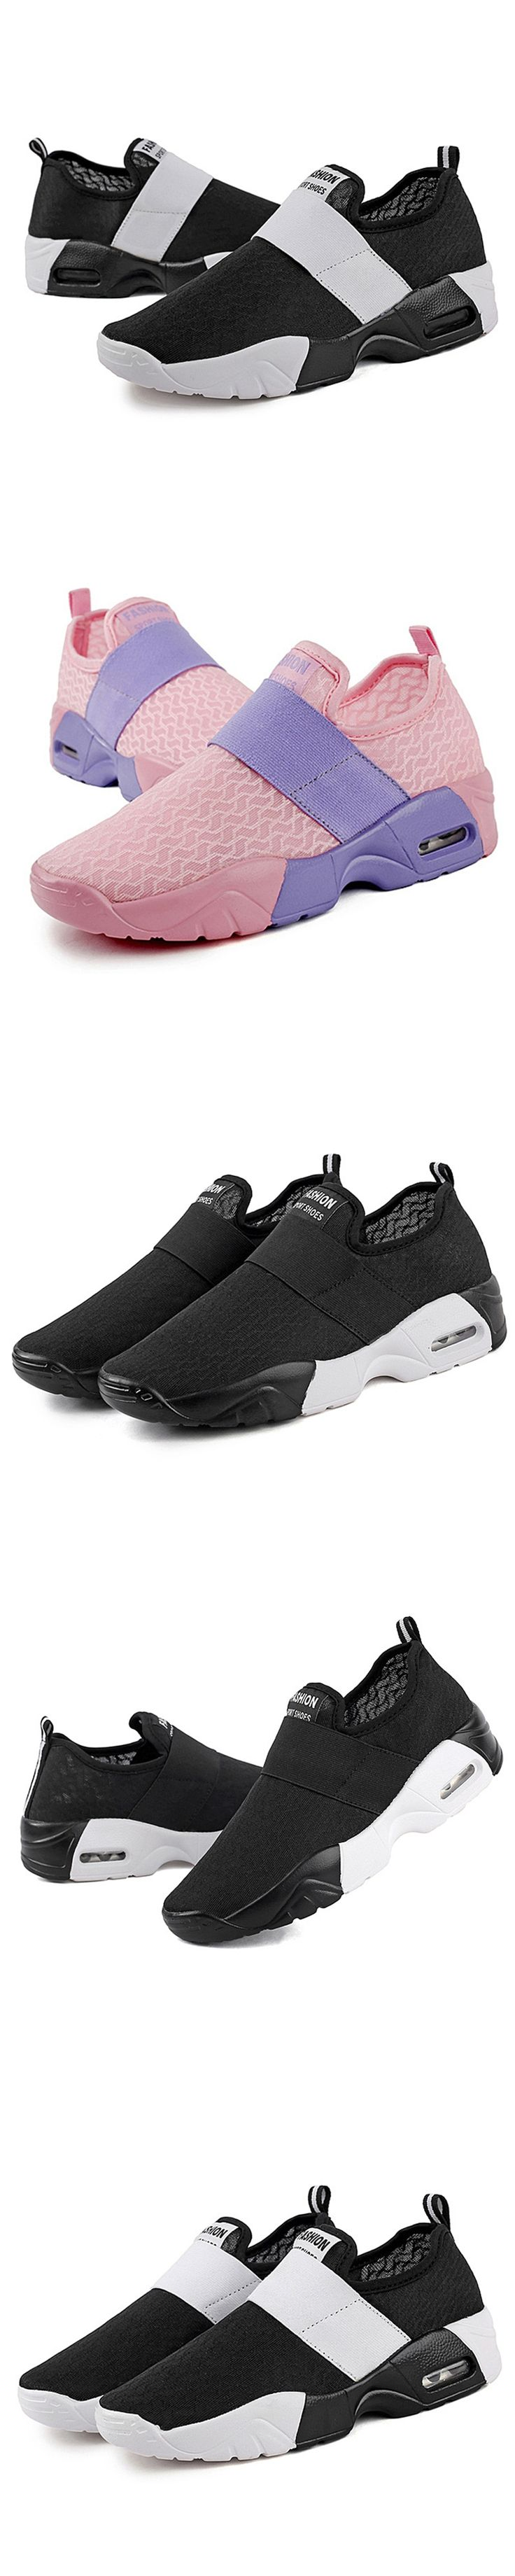 New Free Air Mesh Women and Men Running Shoes Male Outdoor Air Cushion Jogging Shoes Sports Trainers Shoes Sneakers 2630